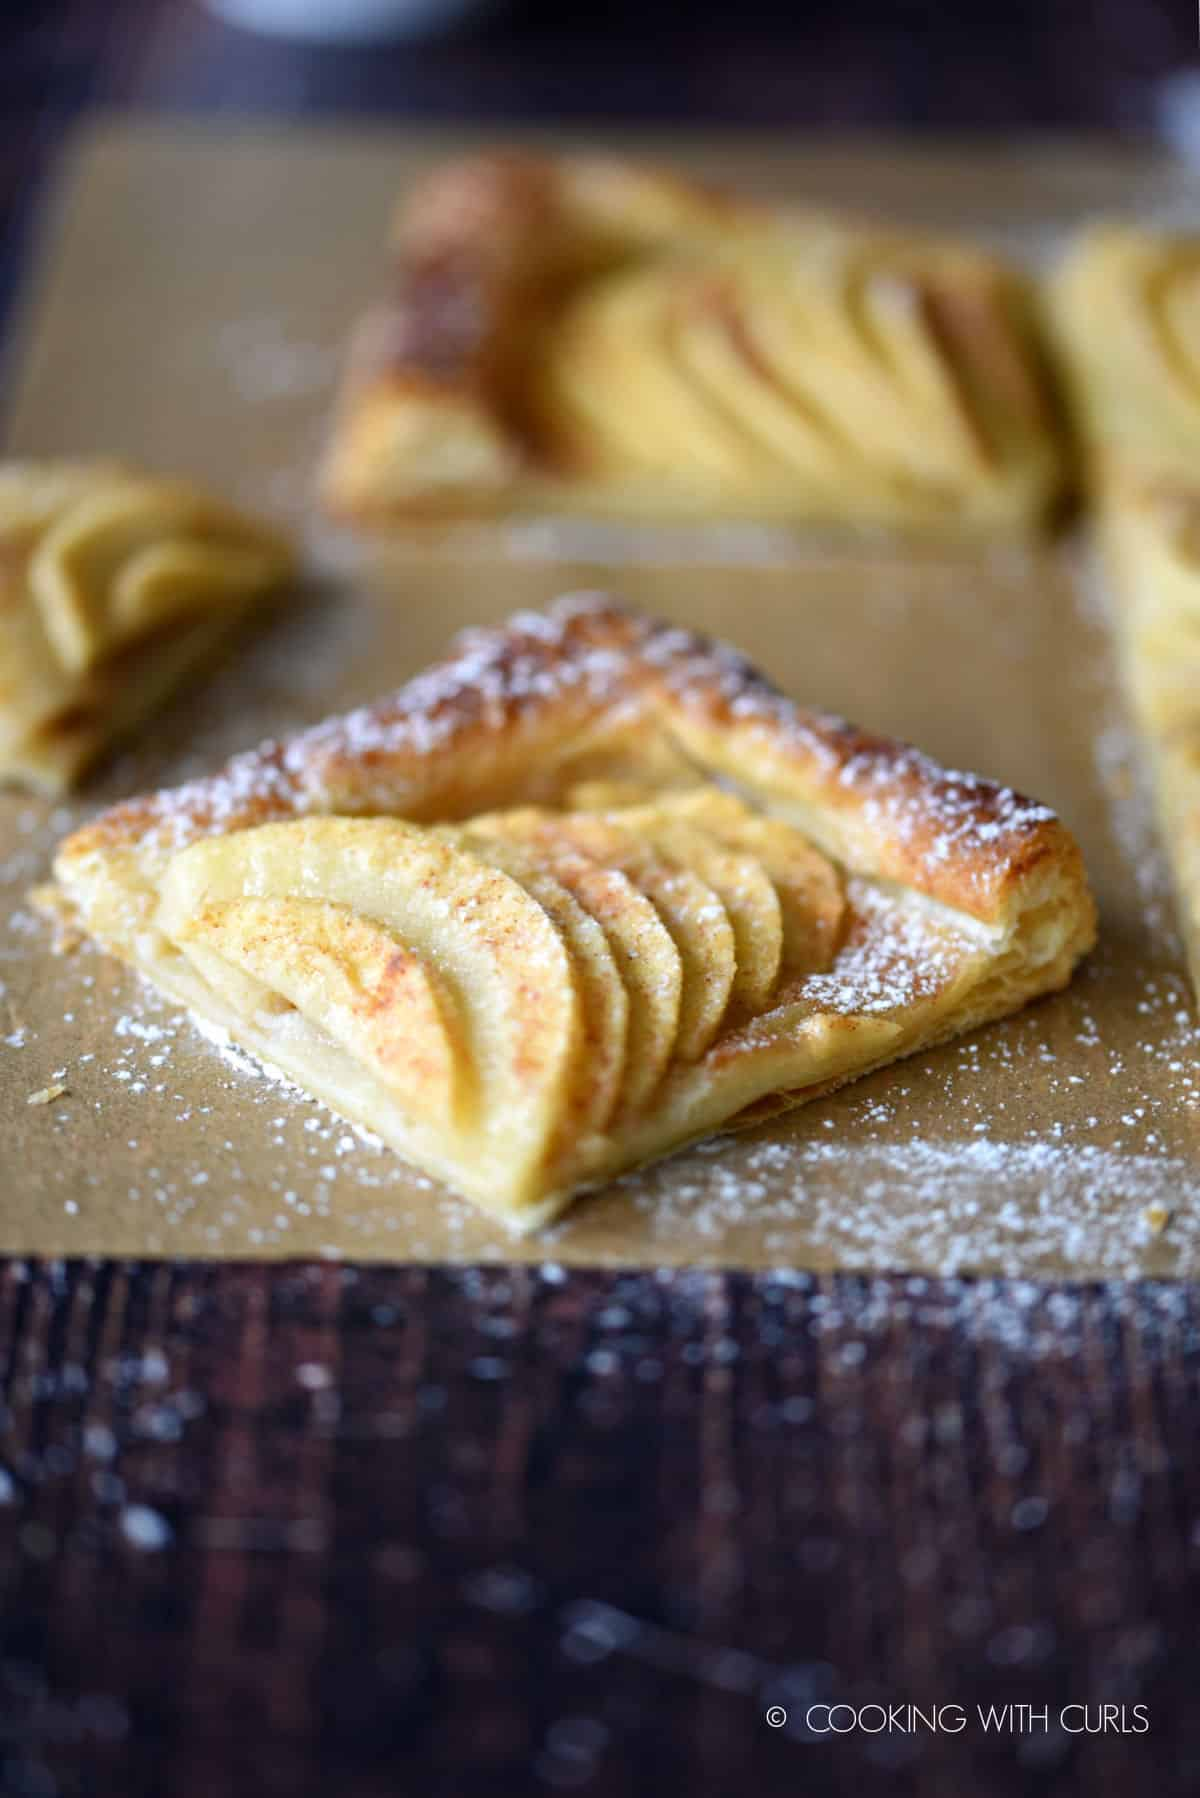 a corner piece of puff pastry apple tart pulled away from the remaining pieces on a sheet of parchment paper, and dusted with powdered sugar.